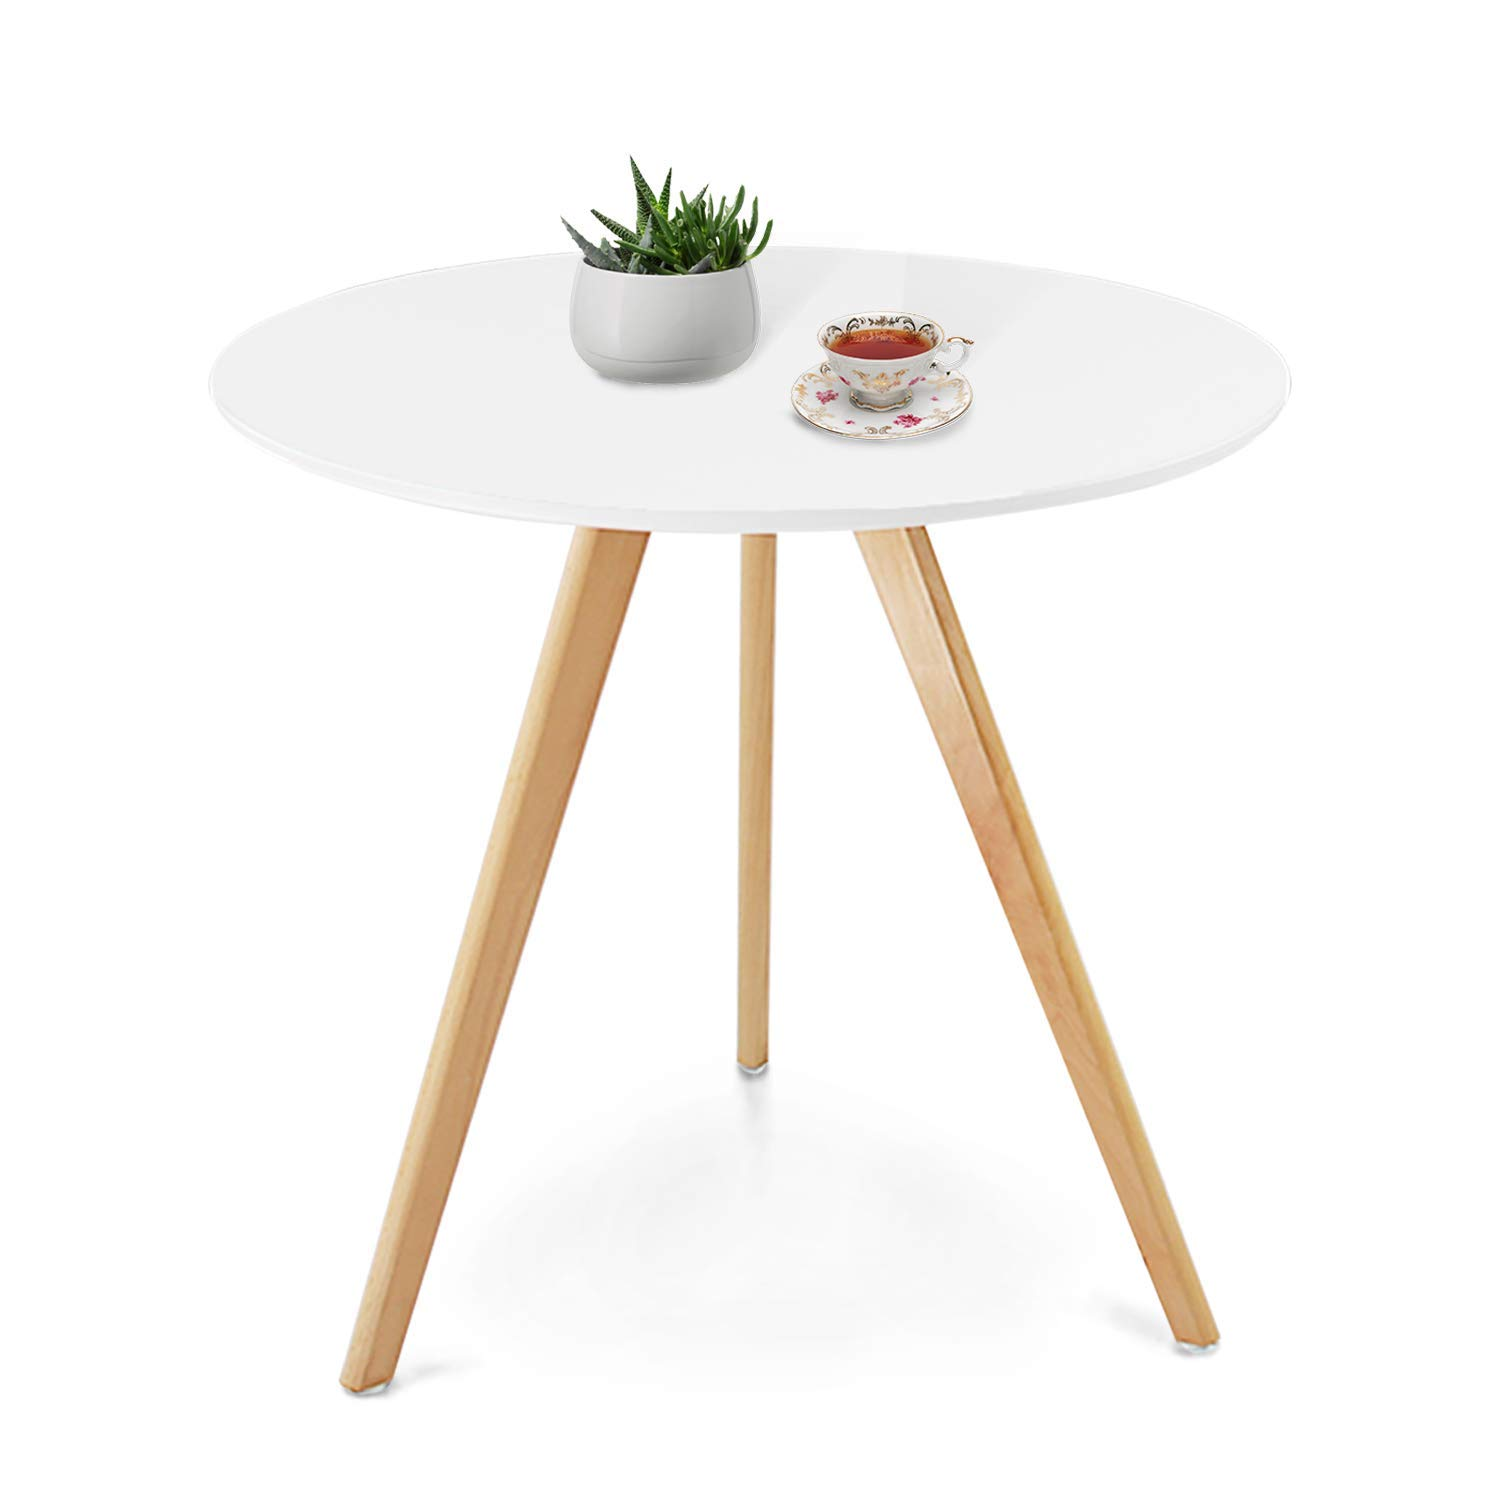 Jerry & Maggie - Dinner Table Desk Large Family Size with Wood Legs Stone Like Polish Surface Multi Purpose Work Study Dining Living Room Kitchen Furniture Decor Modern Fashion Simple - Round | White